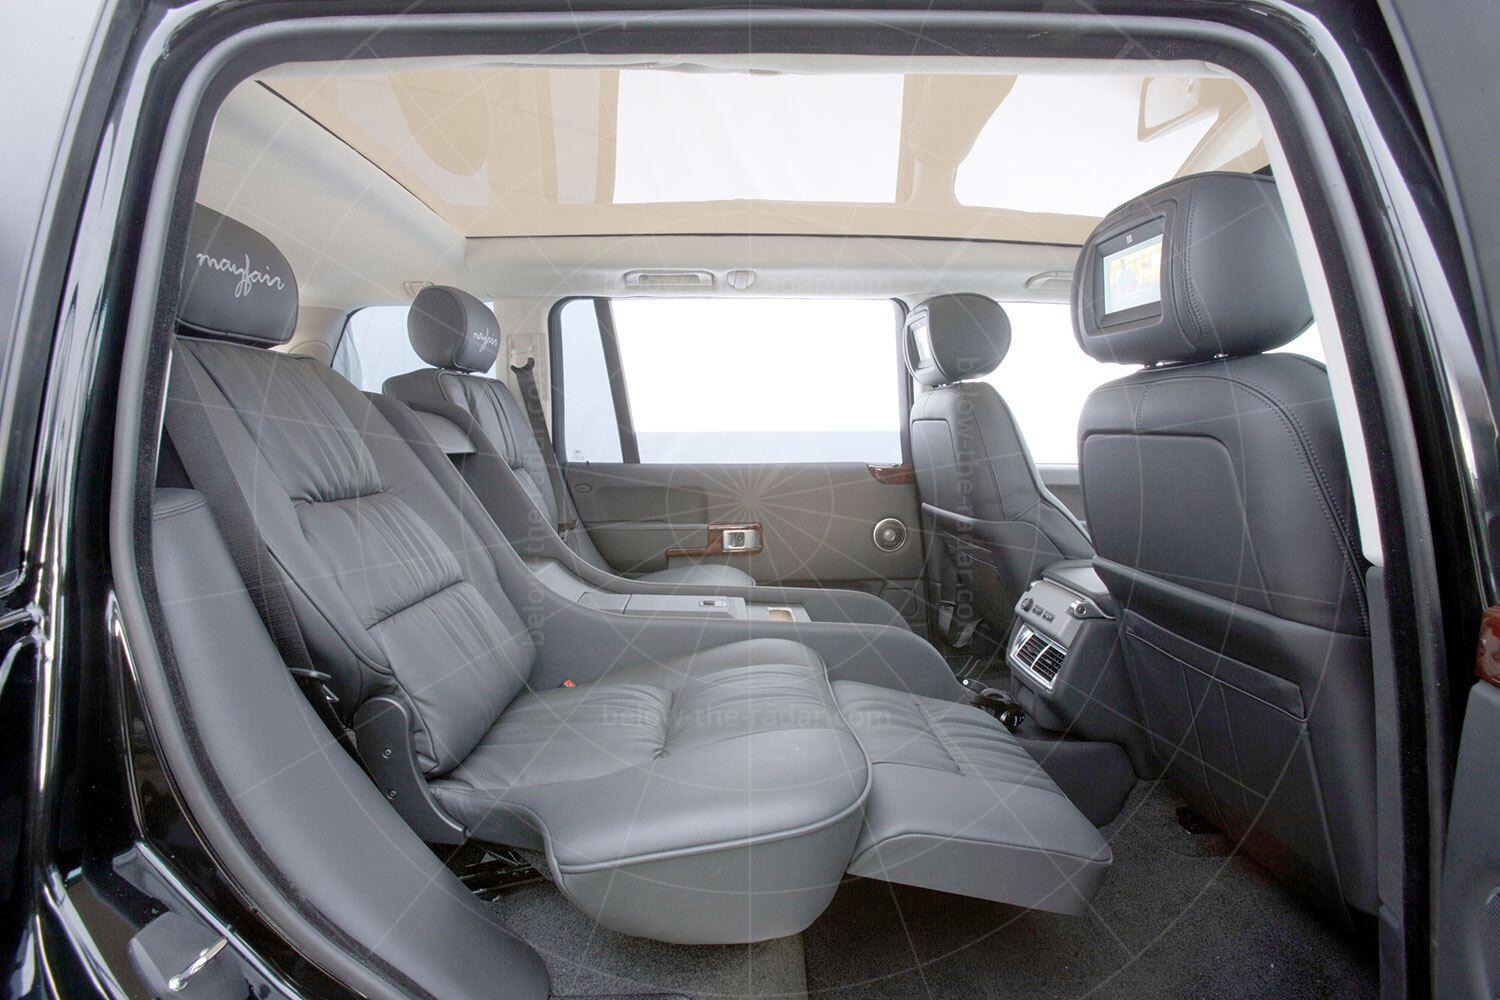 Range Rover Mayfair rear seats Pic: magiccarpics.co.uk | Range Rover Mayfair rear seats